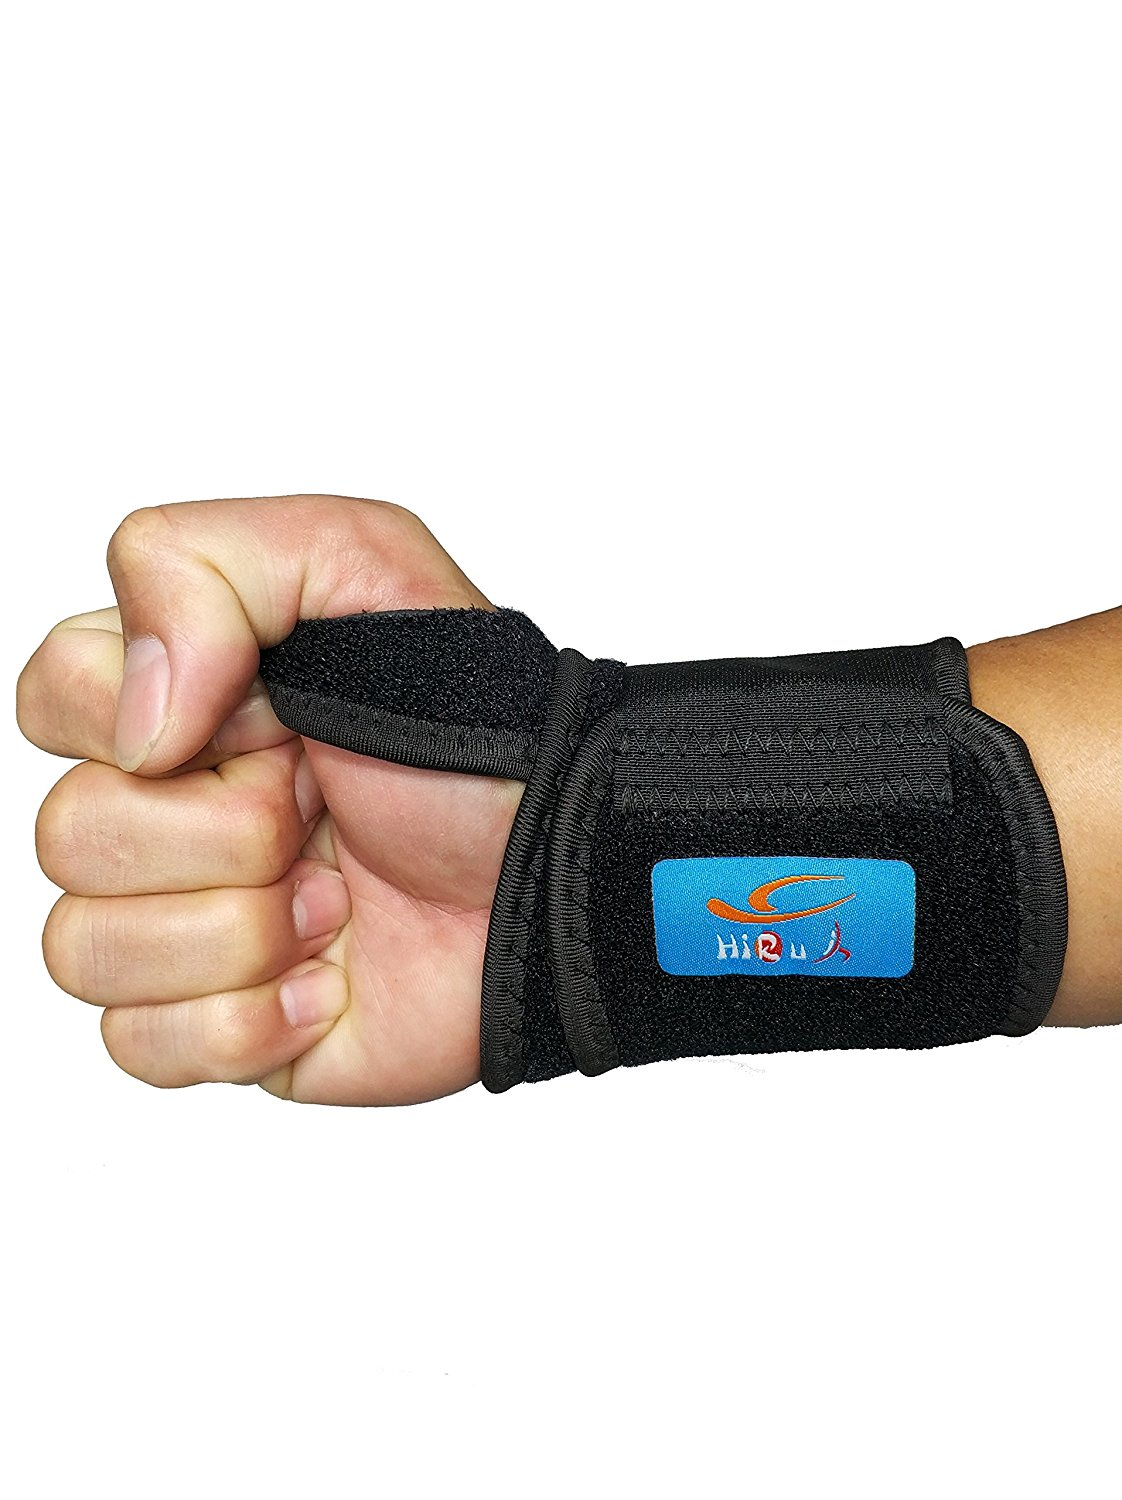 Wear Anywhere Unisex HiRui 2 Pack Wrist Compression Strap and Wrist Brace Sport Wrist Support for Fitness Adjustable Tendonitis Pain Relief Carpal Tunnel Arthritis Weightlifting